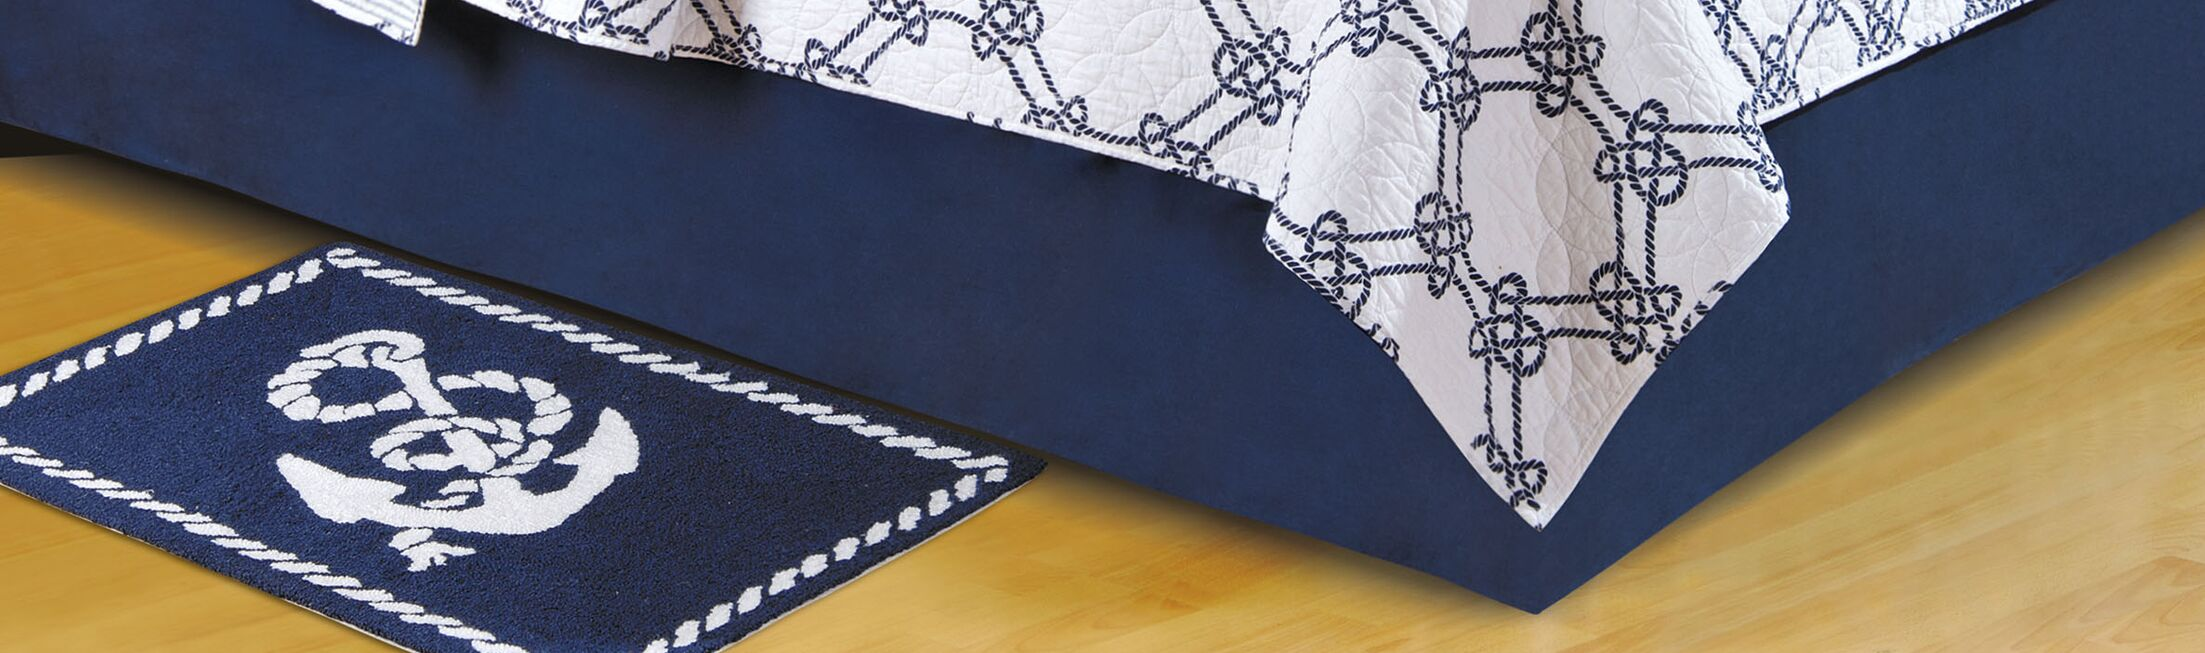 Solid Blue Bed Skirt Size: Queen